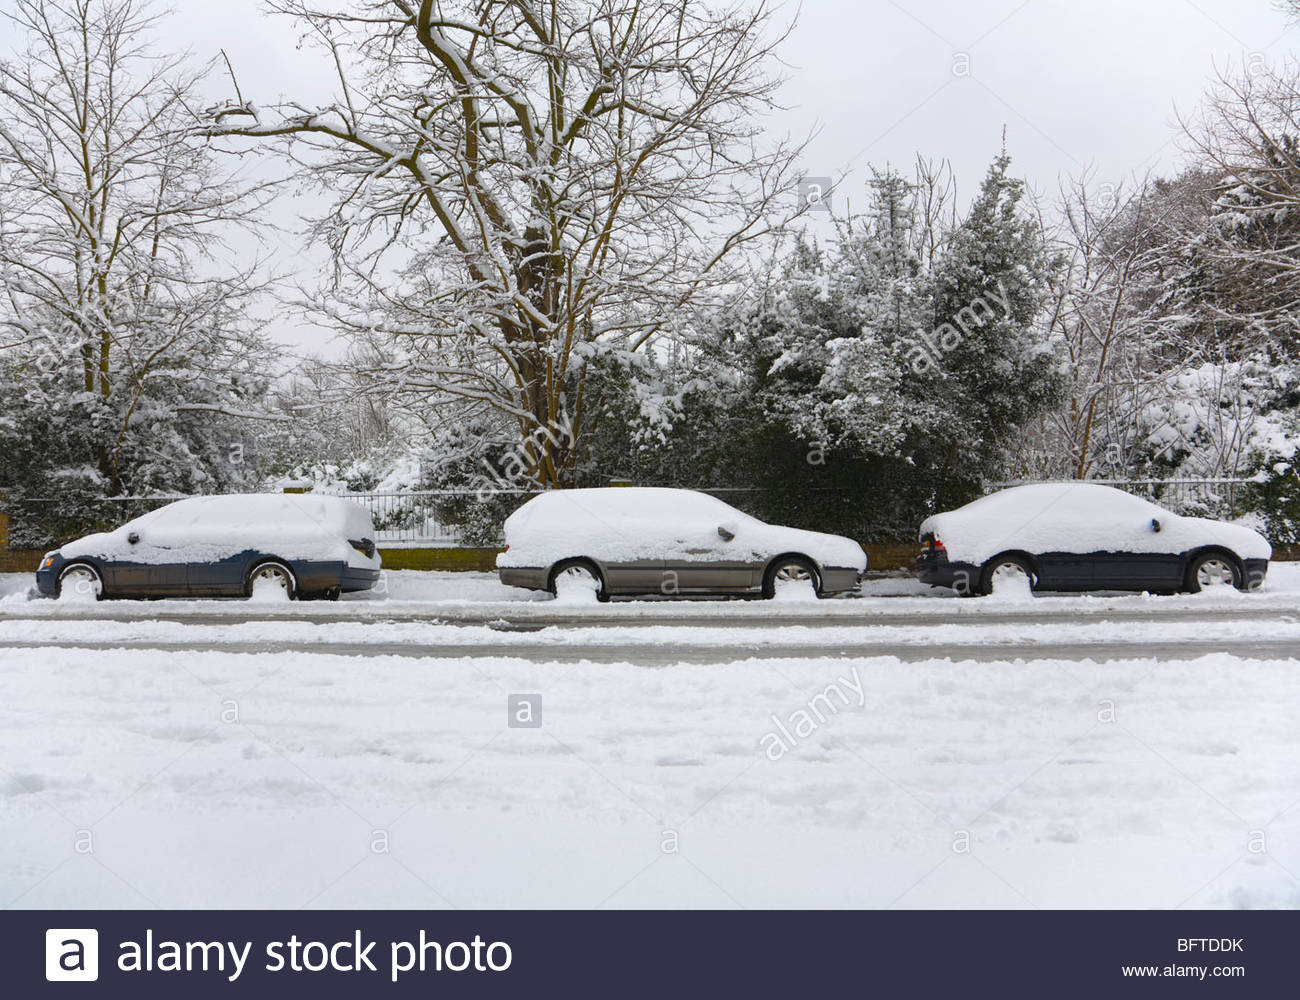 Three snow covered cars parked - Stock Image